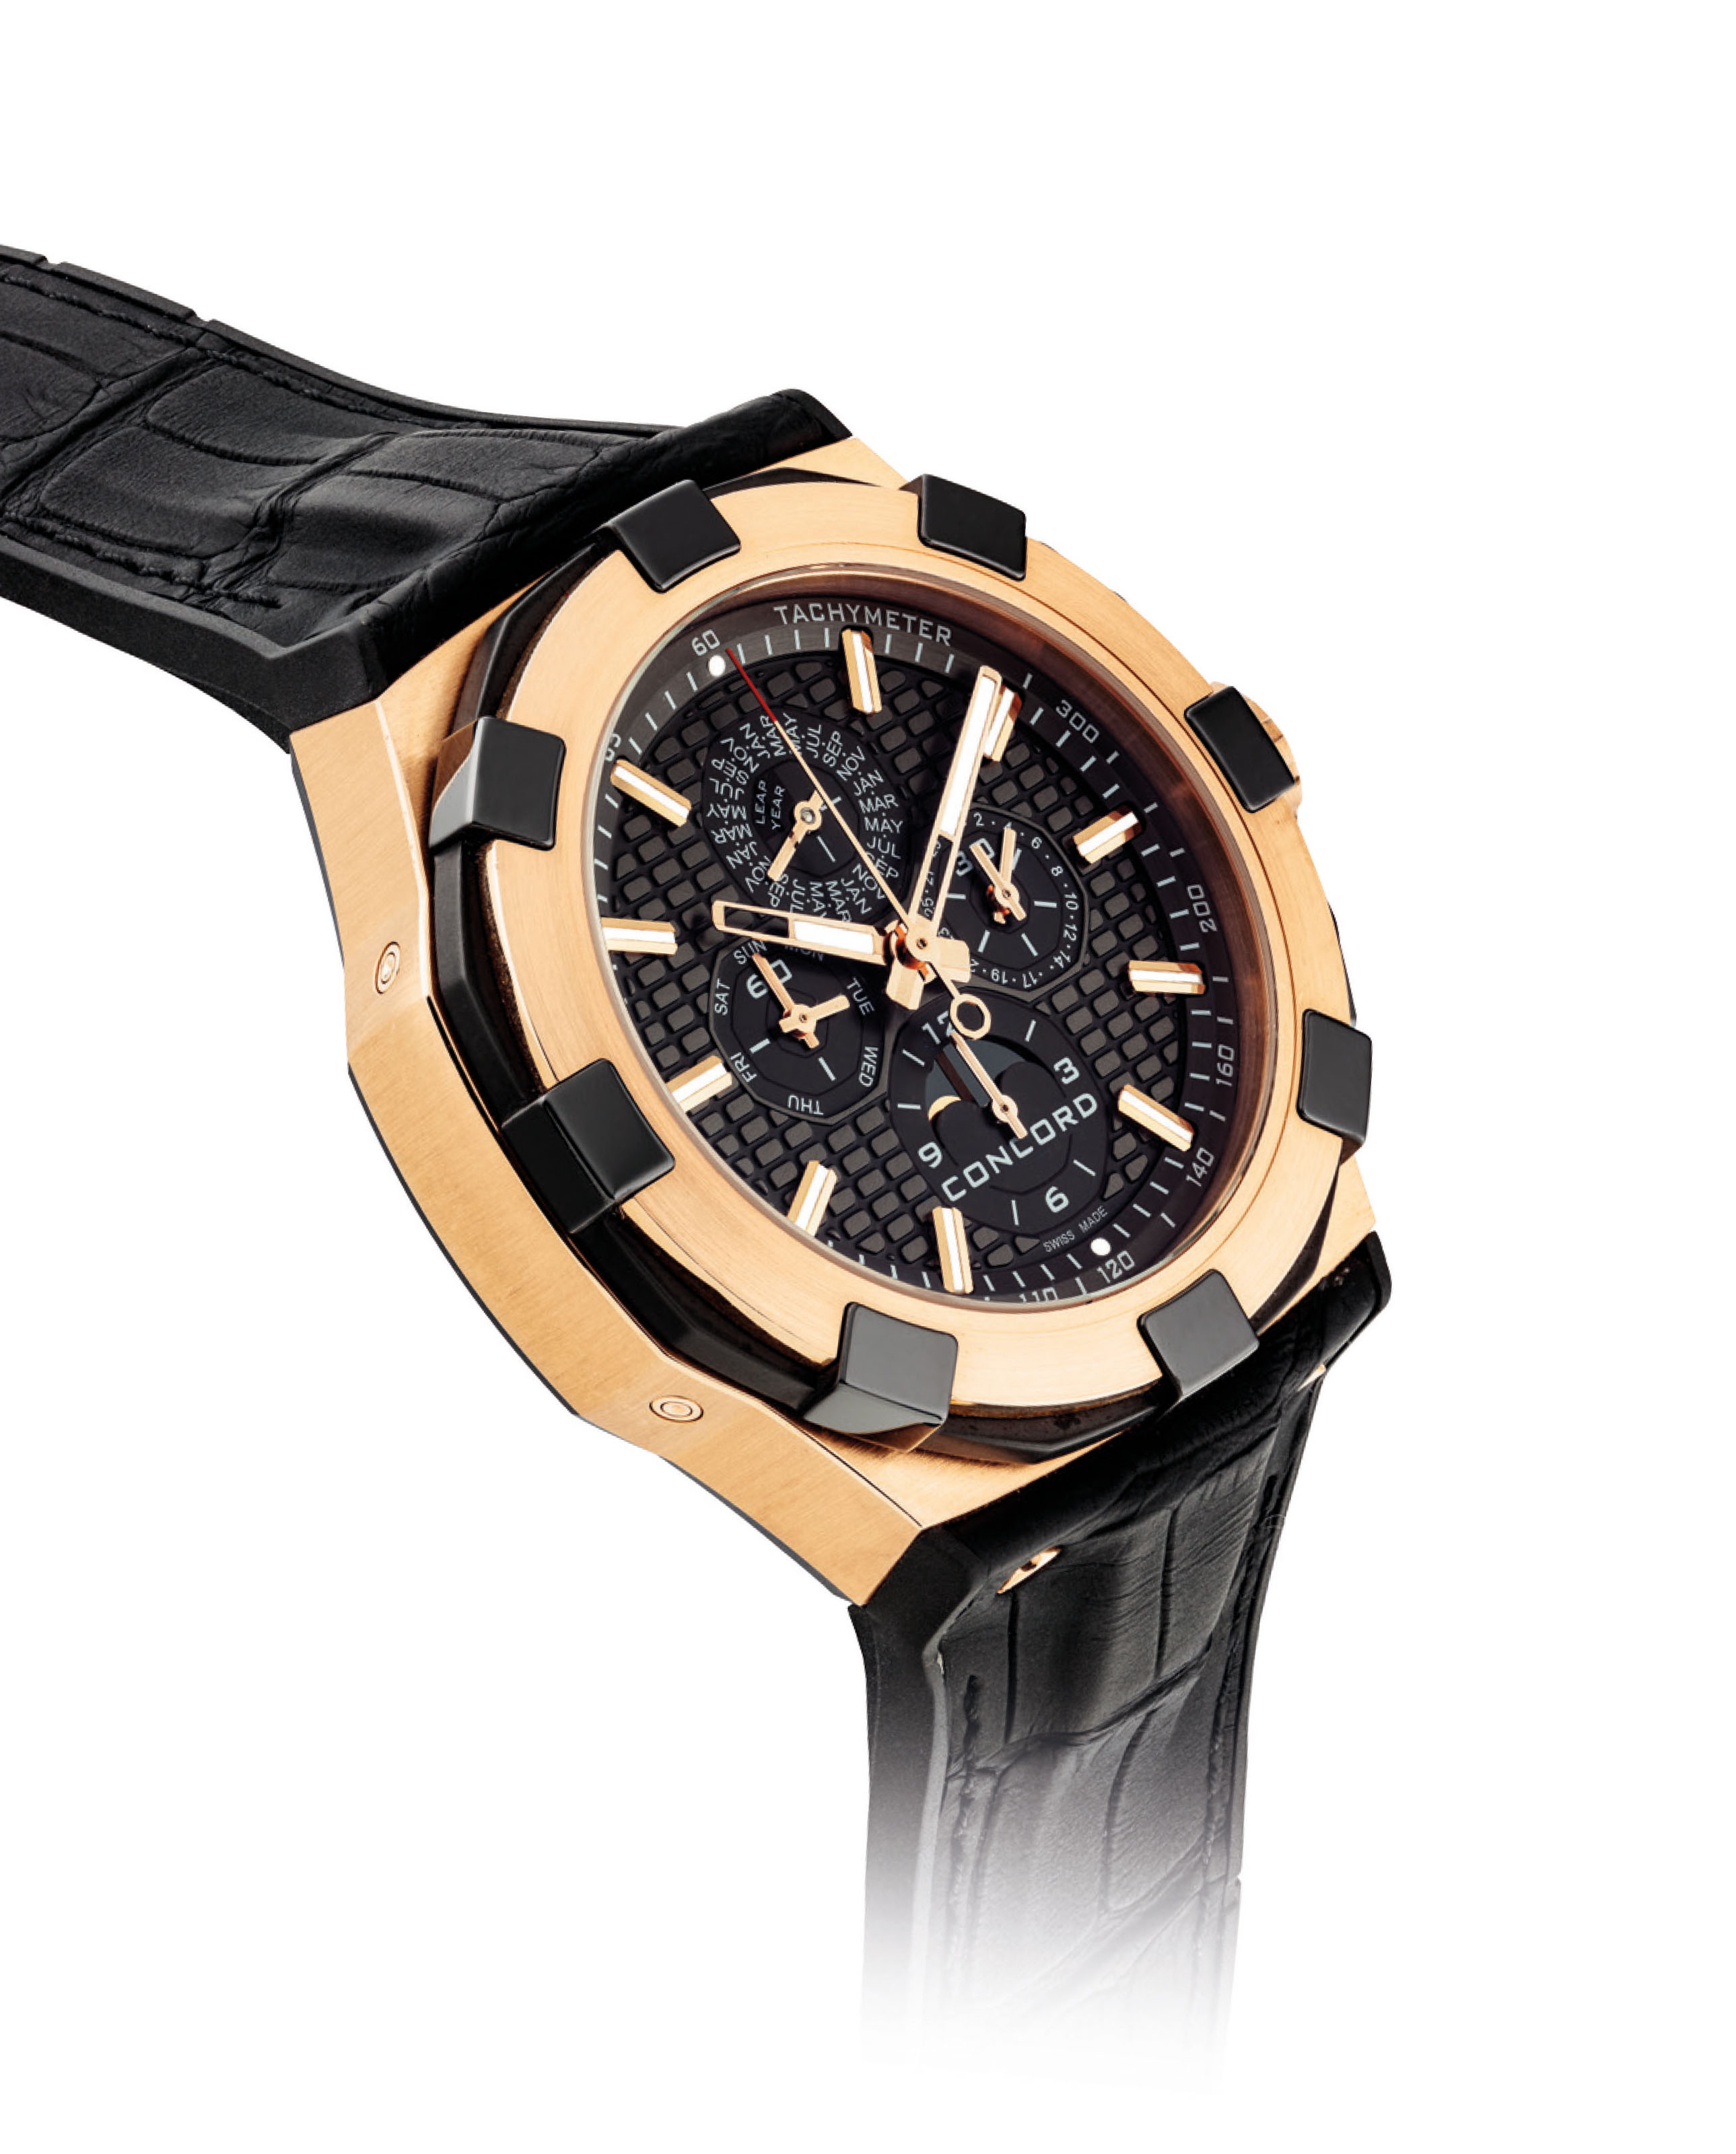 CONCORD. AN 18K PINK GOLD AND TITANIUM LIMITED EDITION AUTOMATIC PERPETUAL CALENDAR CHRONOGRAPH WRISTWATCH WITH MOON PHASES AND LEAP YEAR INDICATION